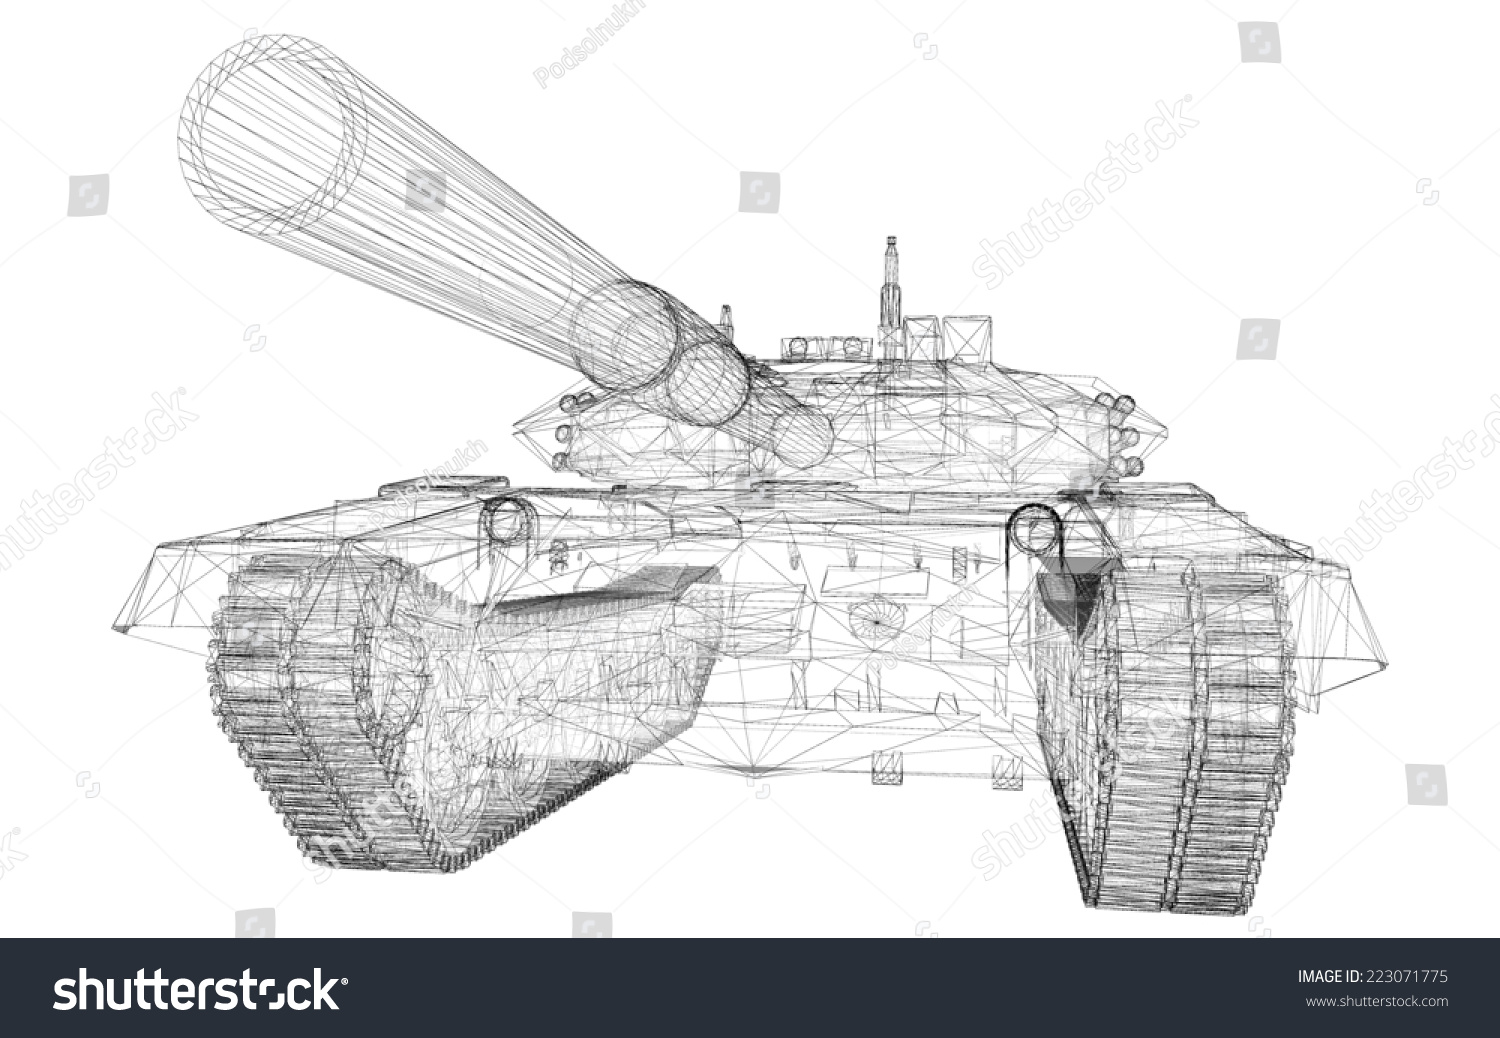 Military Wire Tank Center Trolling Motor 930011050 Diagramtr109lfbd 36 Volt Diagram And Model Body Structure Stock Illustration 223071775 Rh Shutterstock Com Mil Spec Electrical Saw